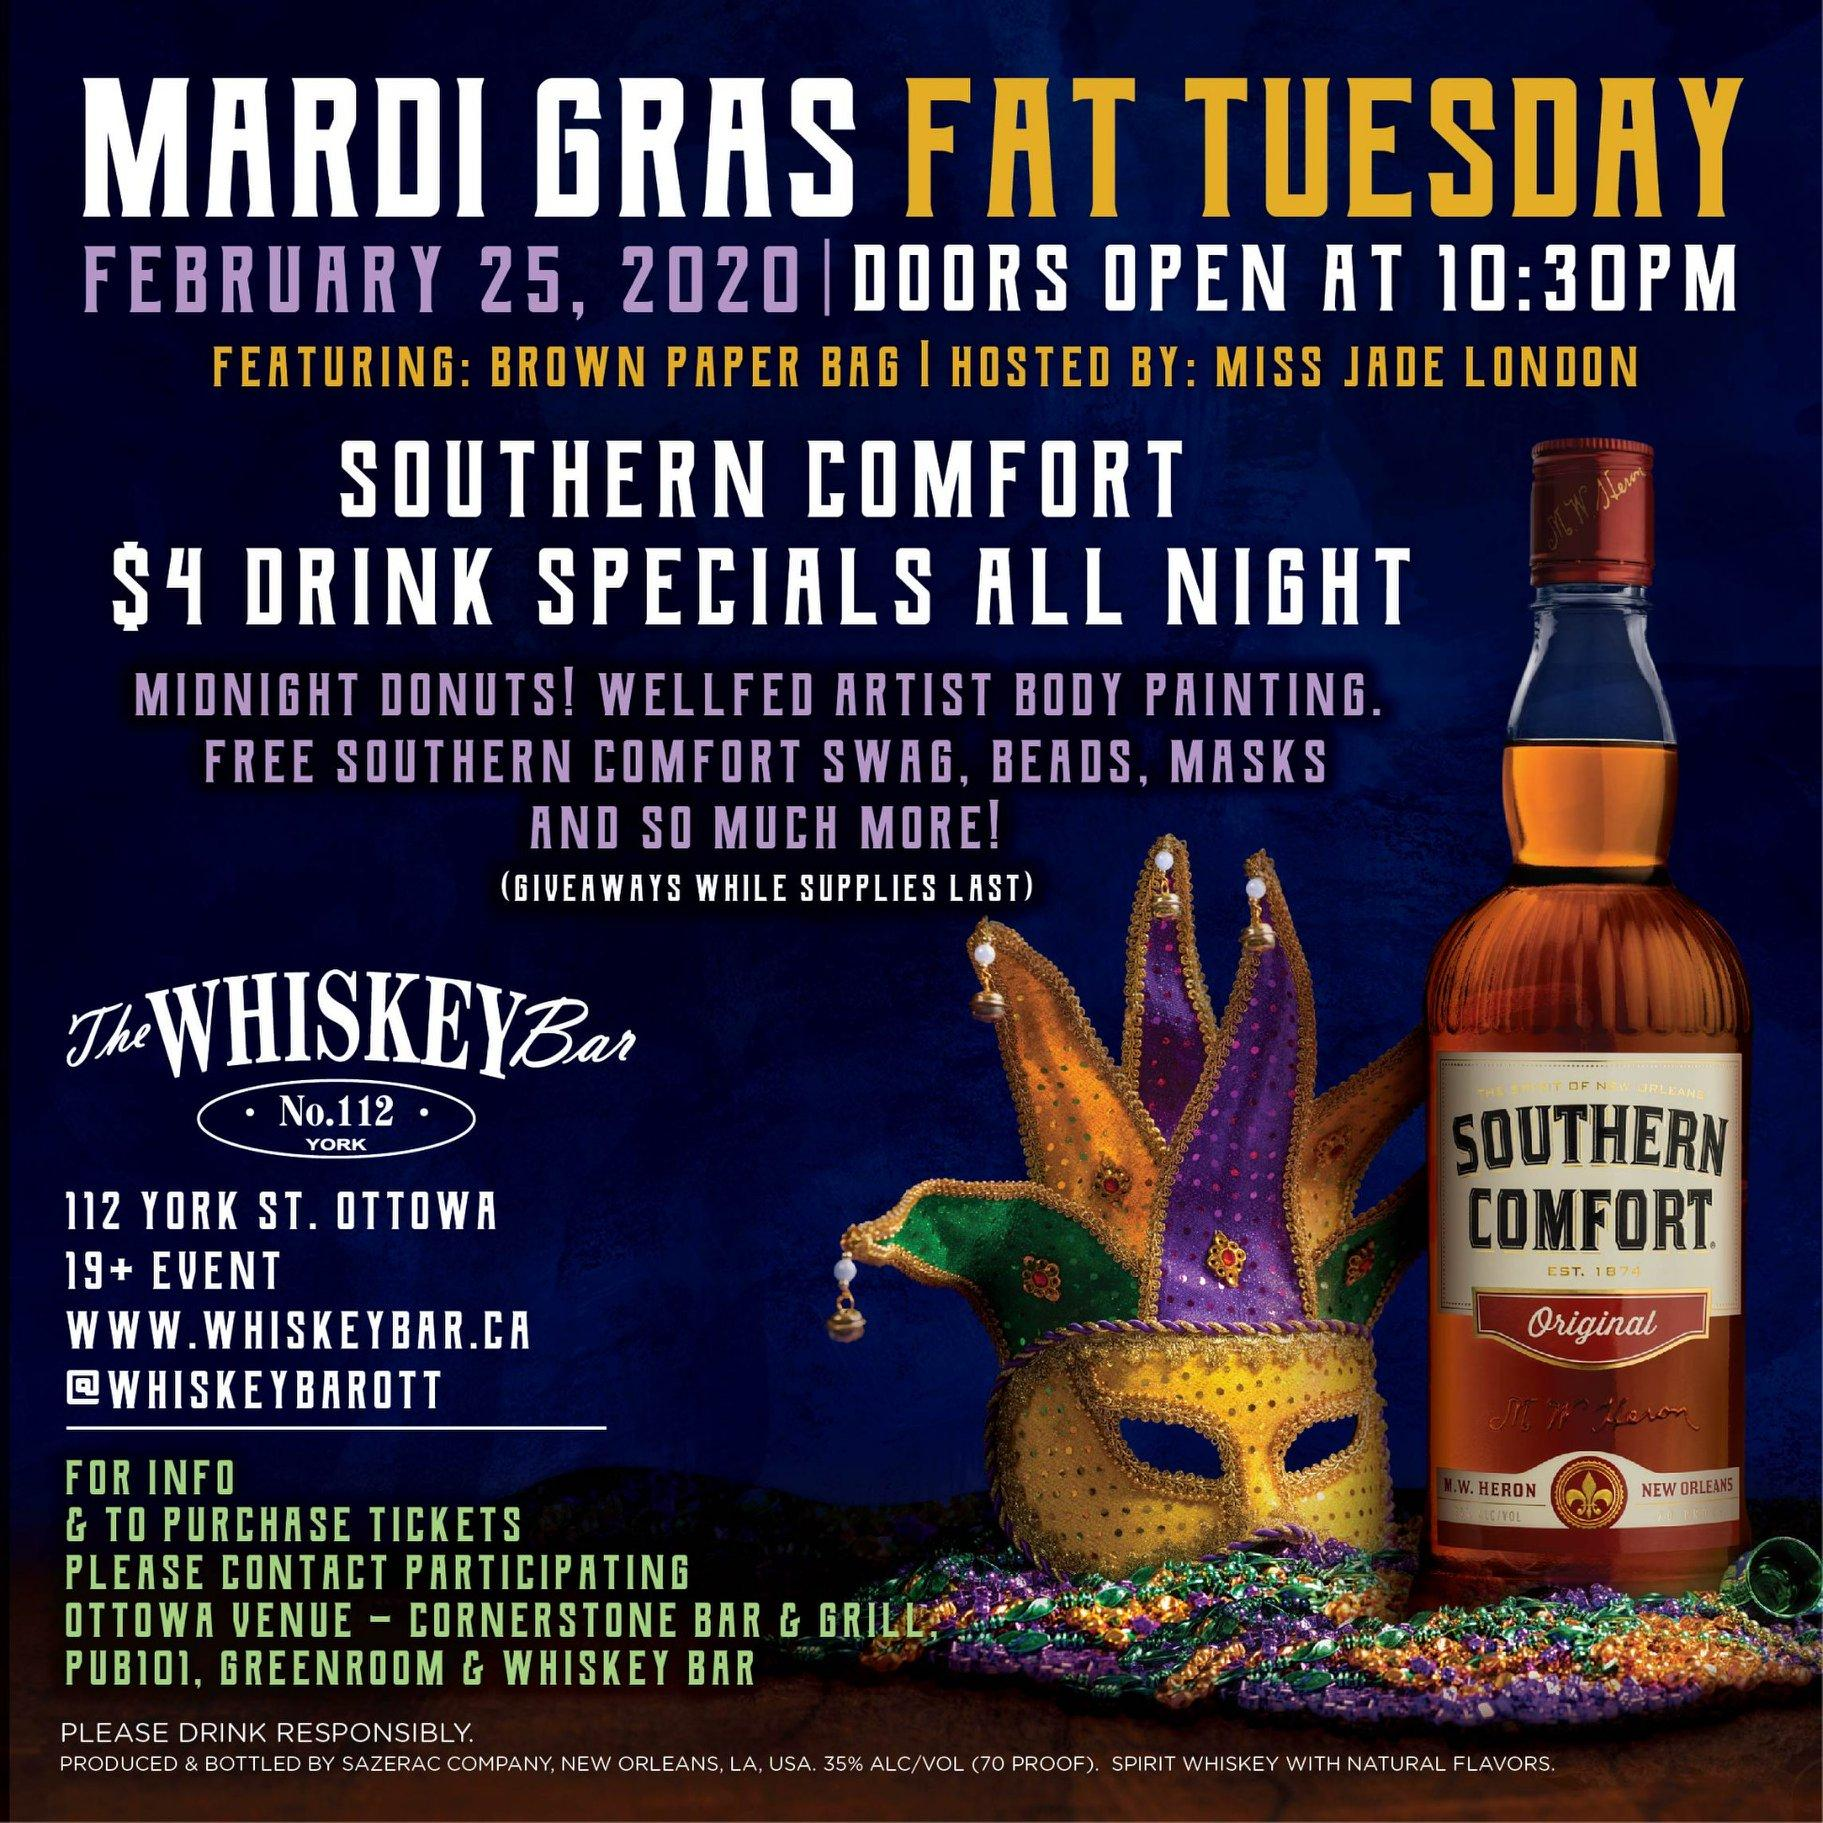 Mardi Gras by The Whiskey Bar and Southern Comfort